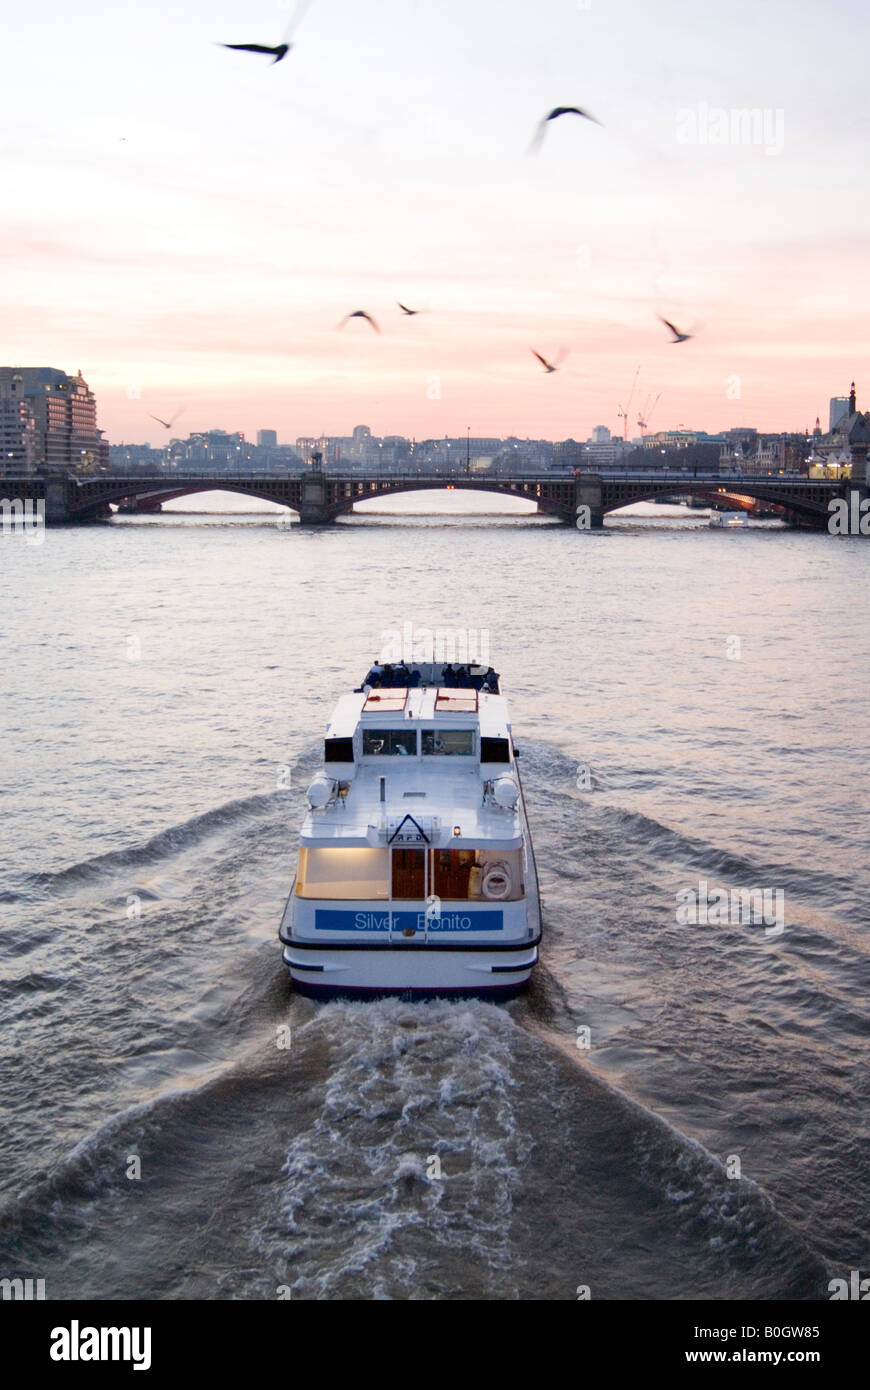 Boat trip on the river Thames at dusk London England UK - Stock Image